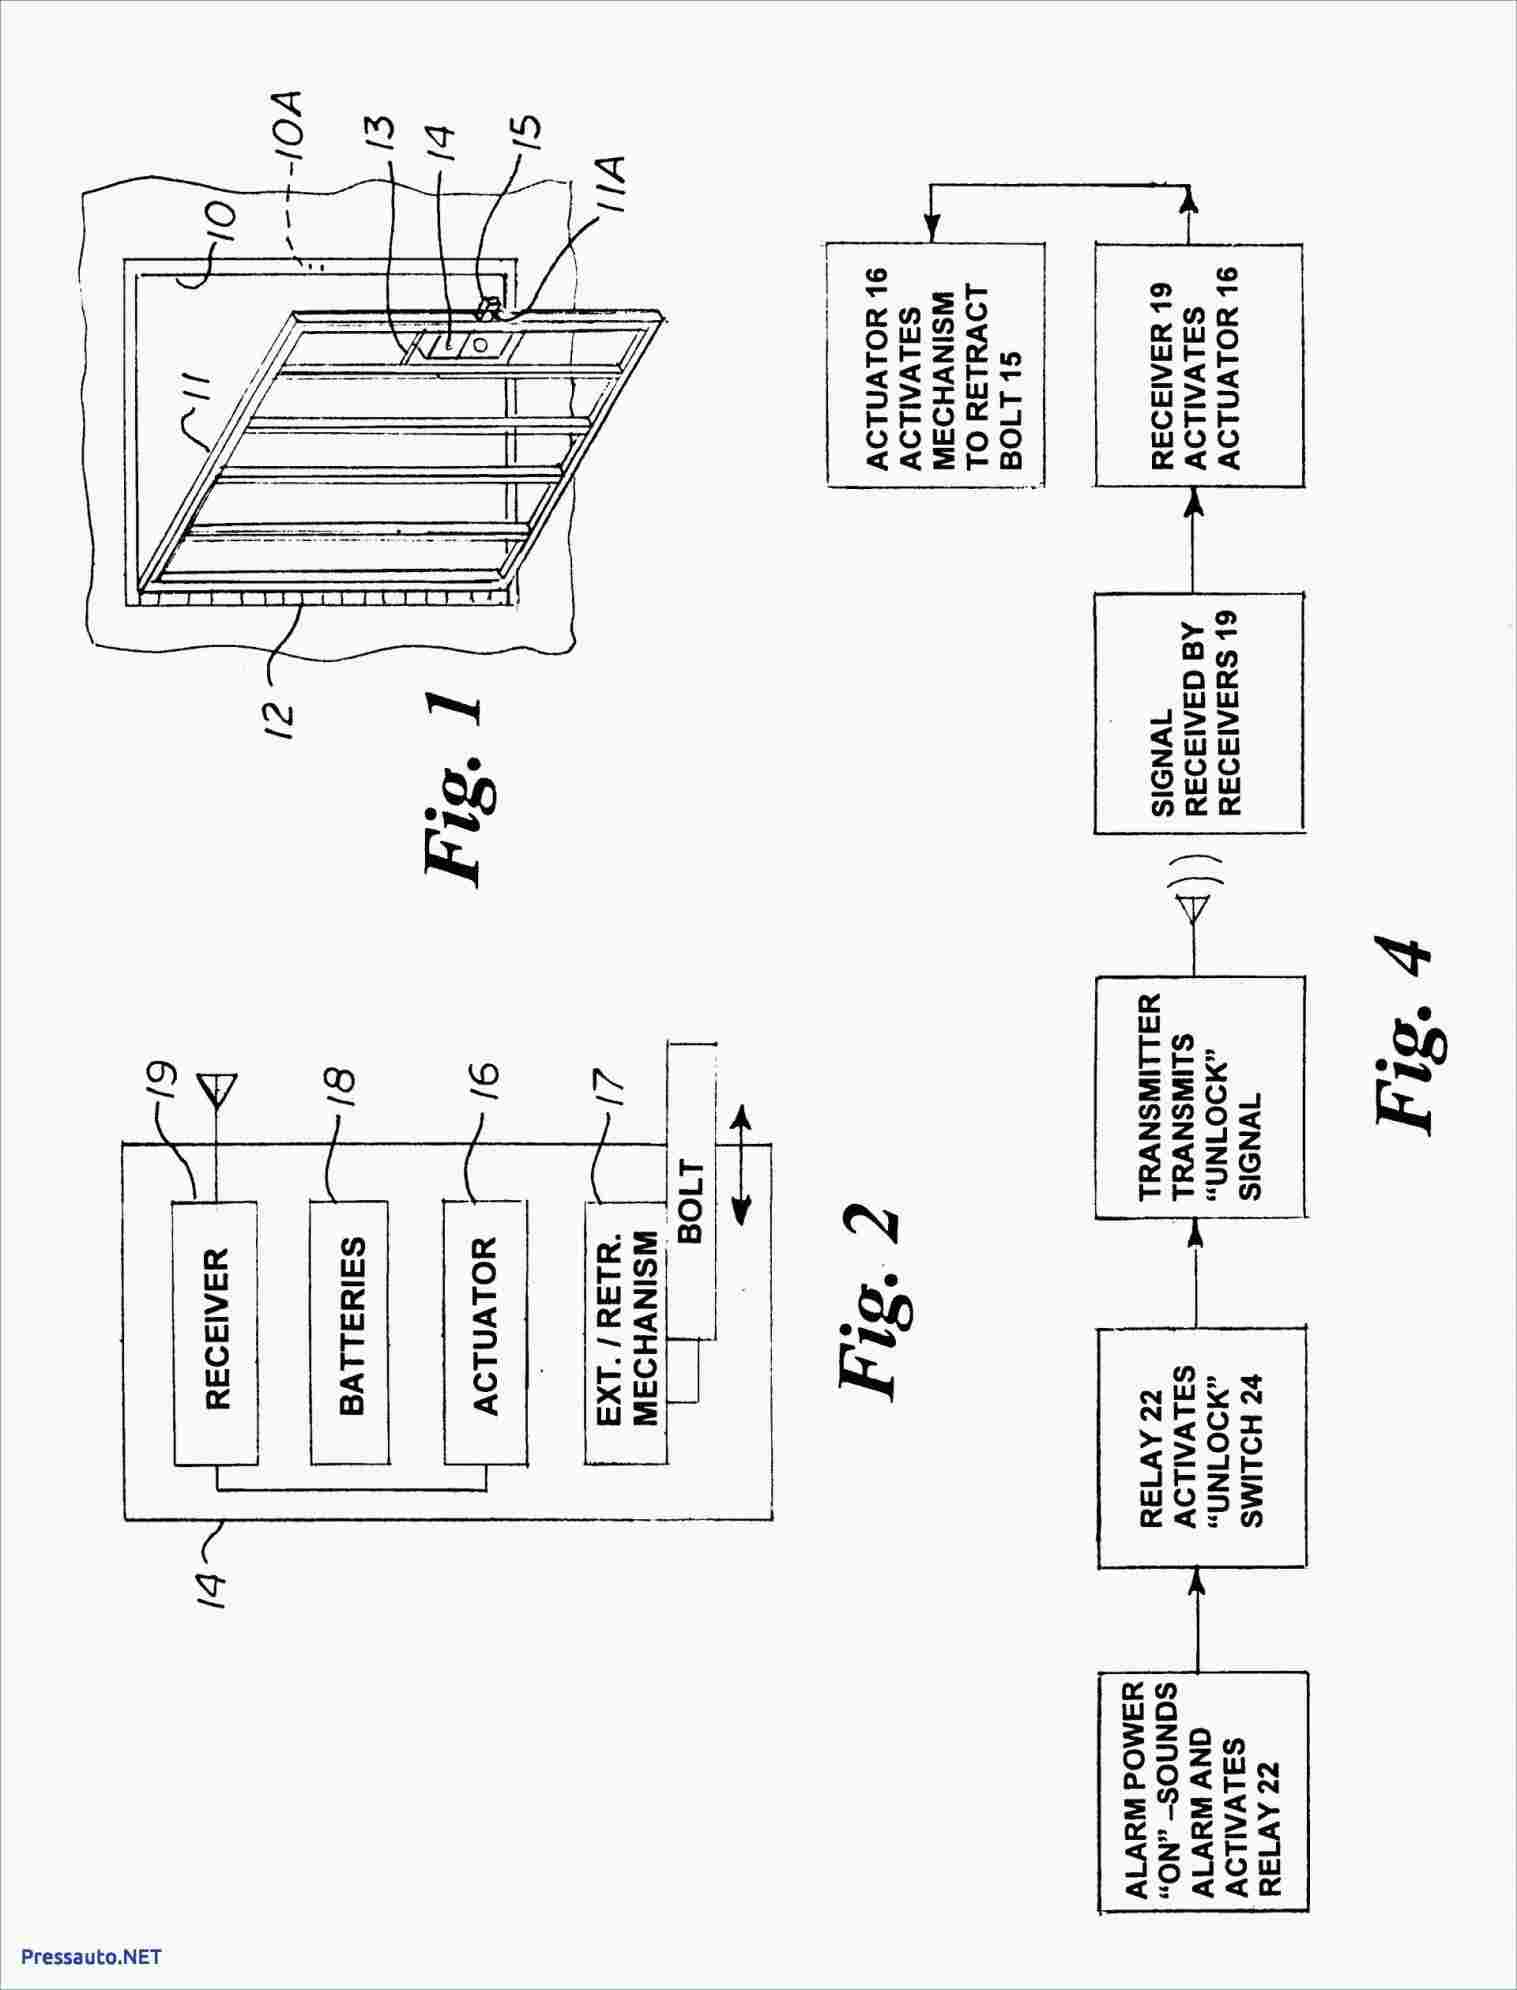 Sunpro Tach Wiring Schematic For | Wiring Diagram - Sunpro Tach Wiring Diagram